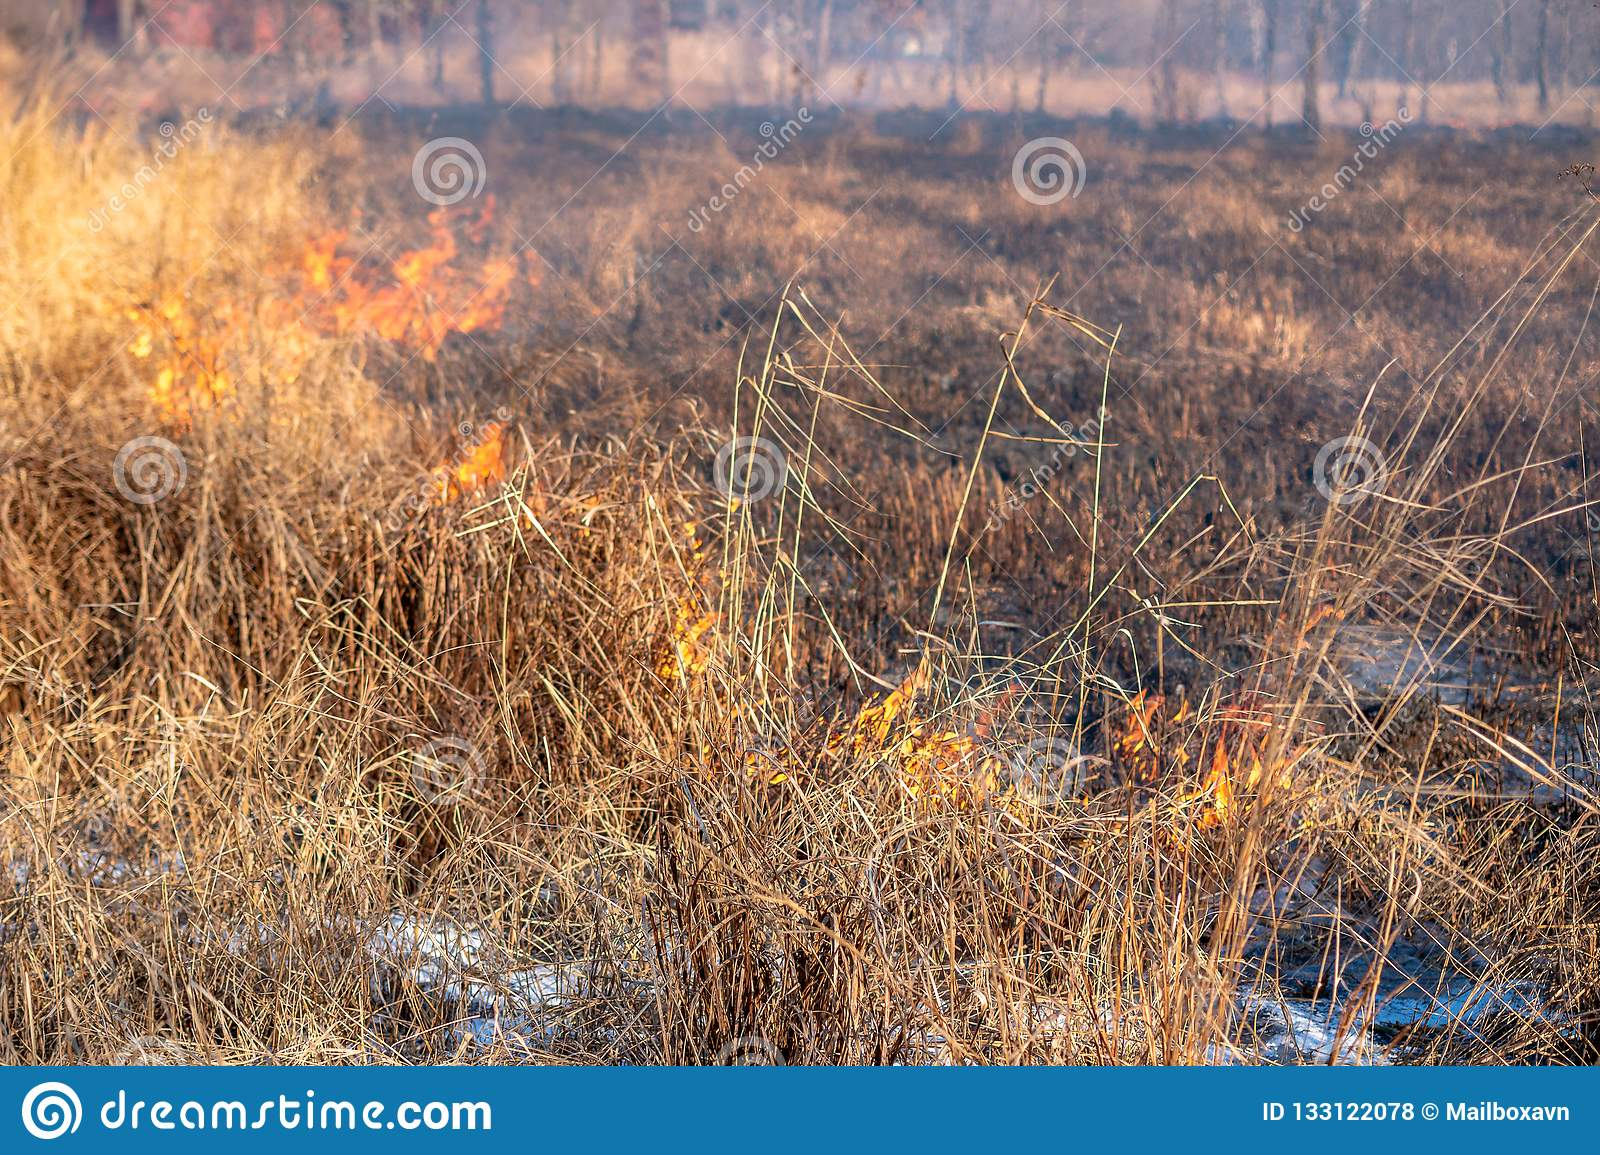 A strong fire spreads in gusts of wind through dry grass